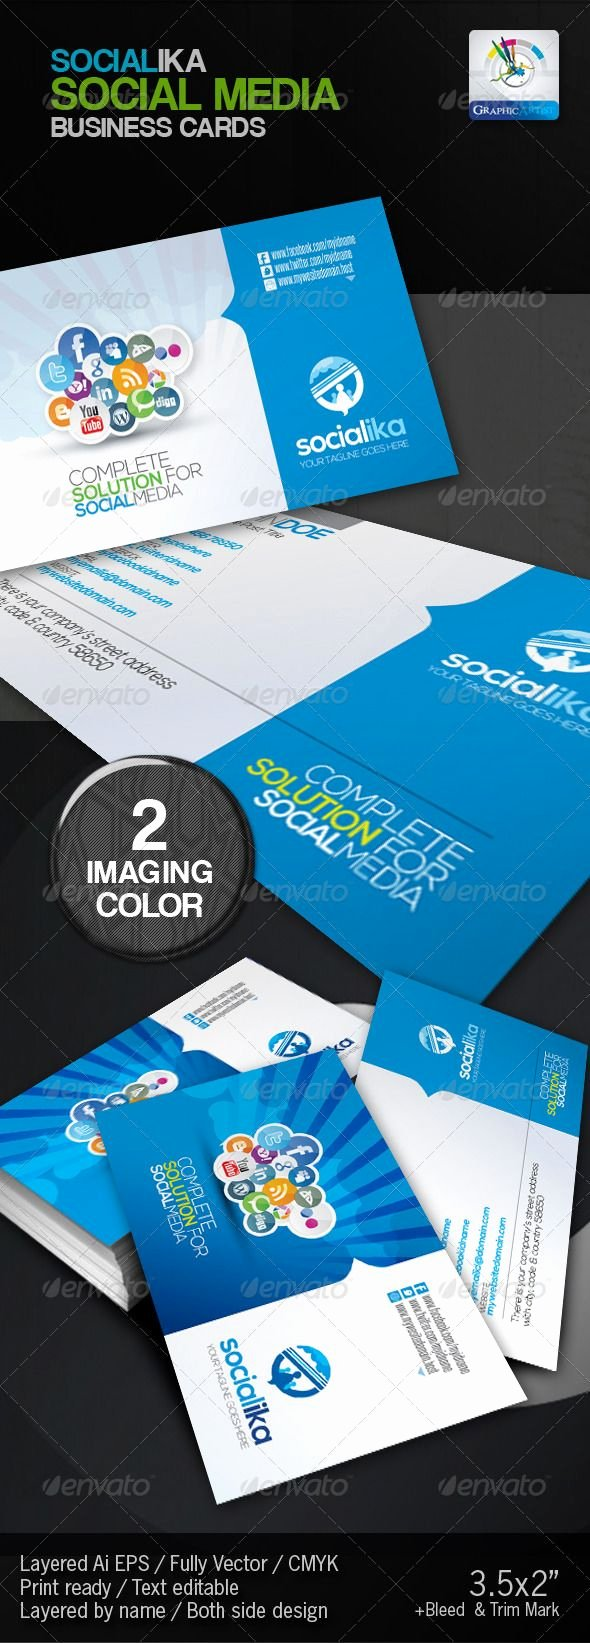 Social Media Business Card Template Awesome 36 Best Images About Corporate Newsletters Email Blasts